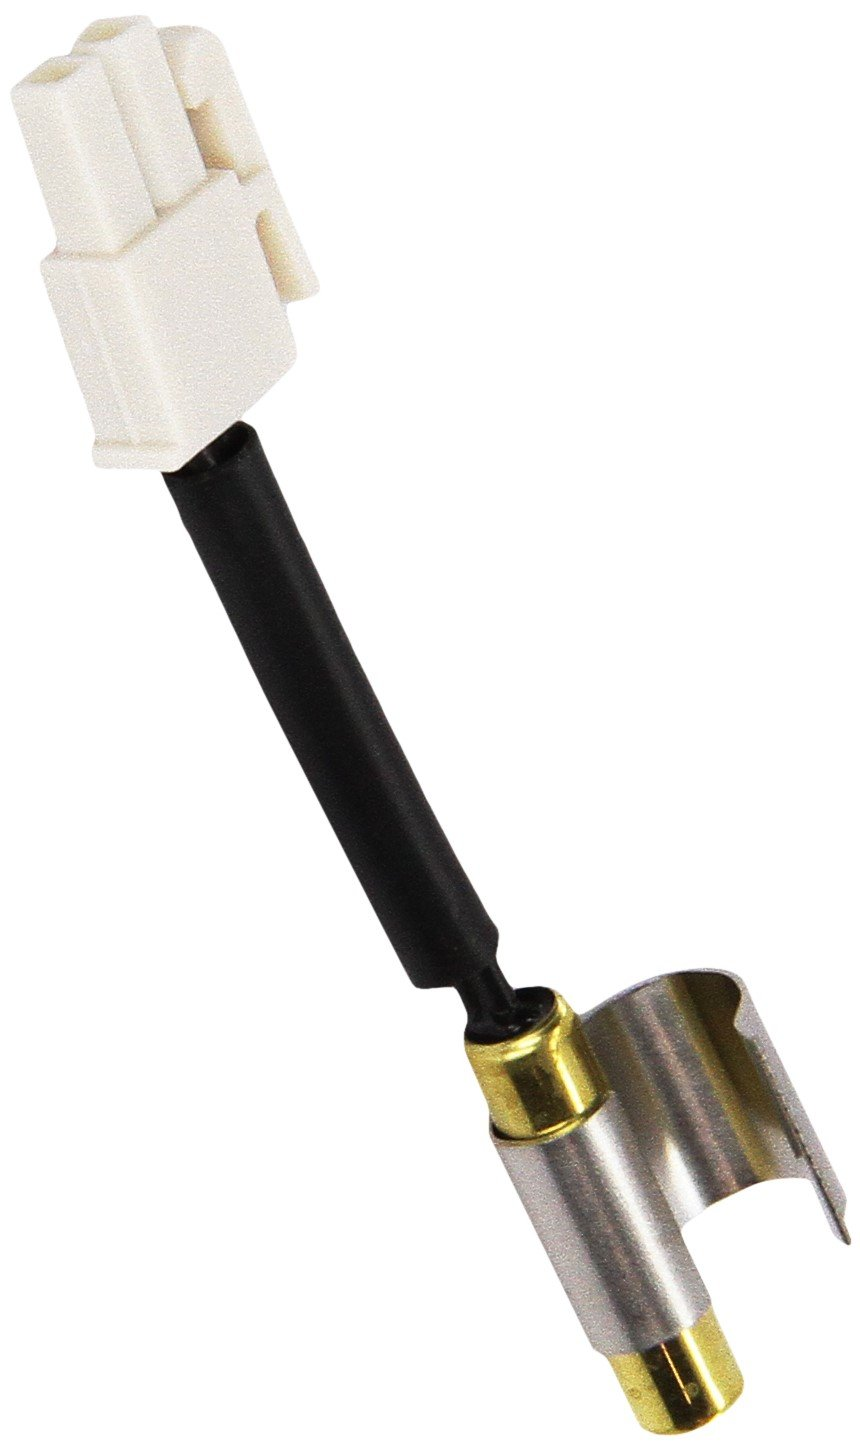 Whirlpool W10383615 Thermistor with Clip, Silver